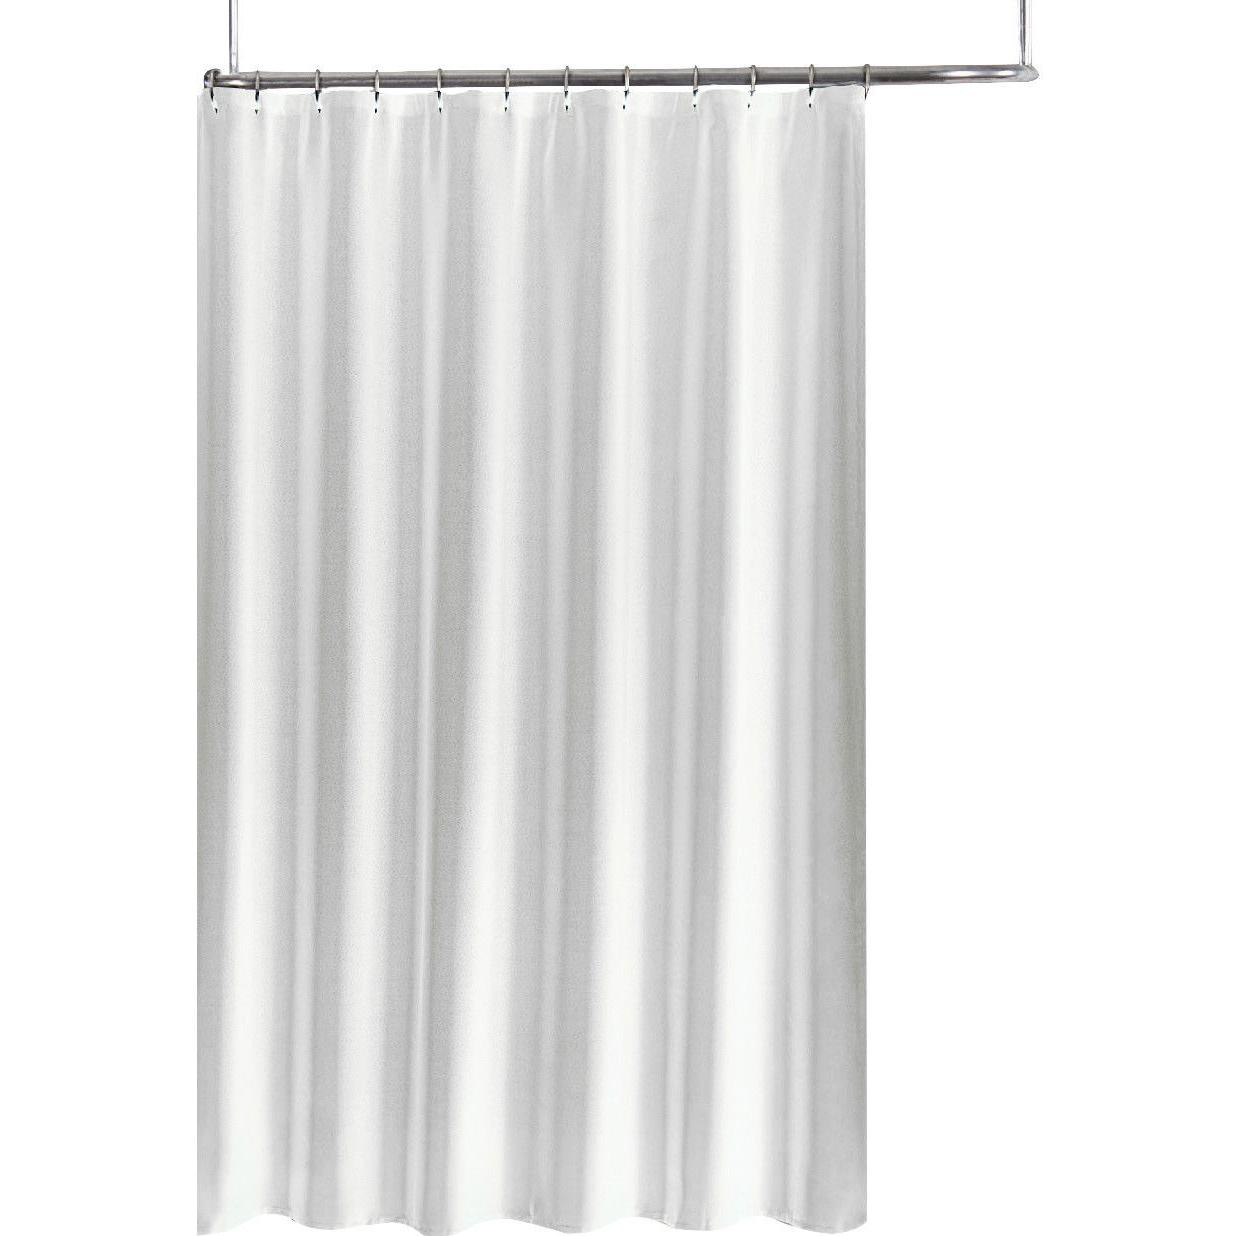 Extra Long Fabric Shower Curtain Liner 70 X